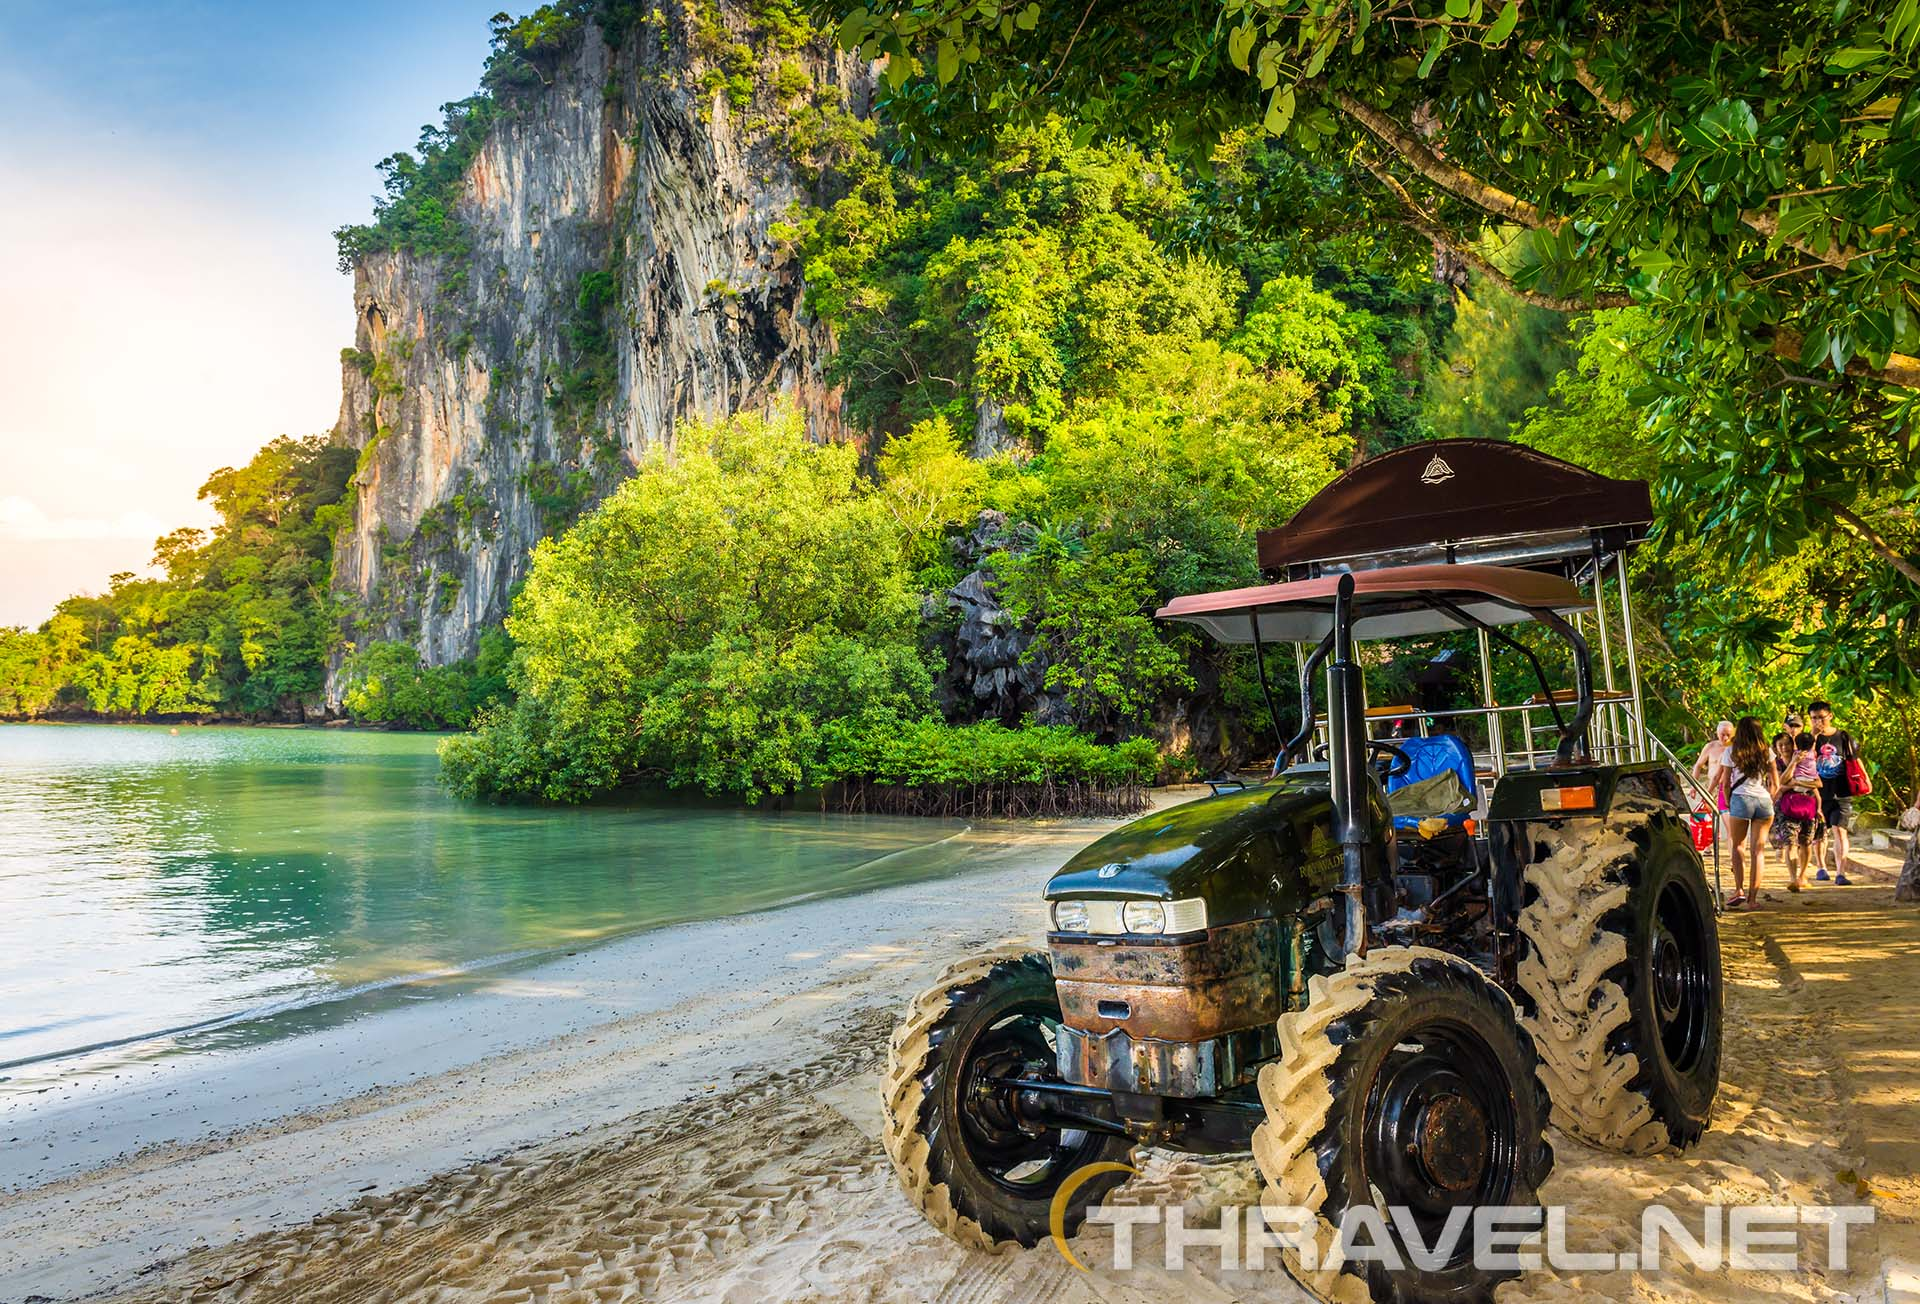 Railay Princess Resort & Spa - a Value Hotel in a Pricey Area in ...